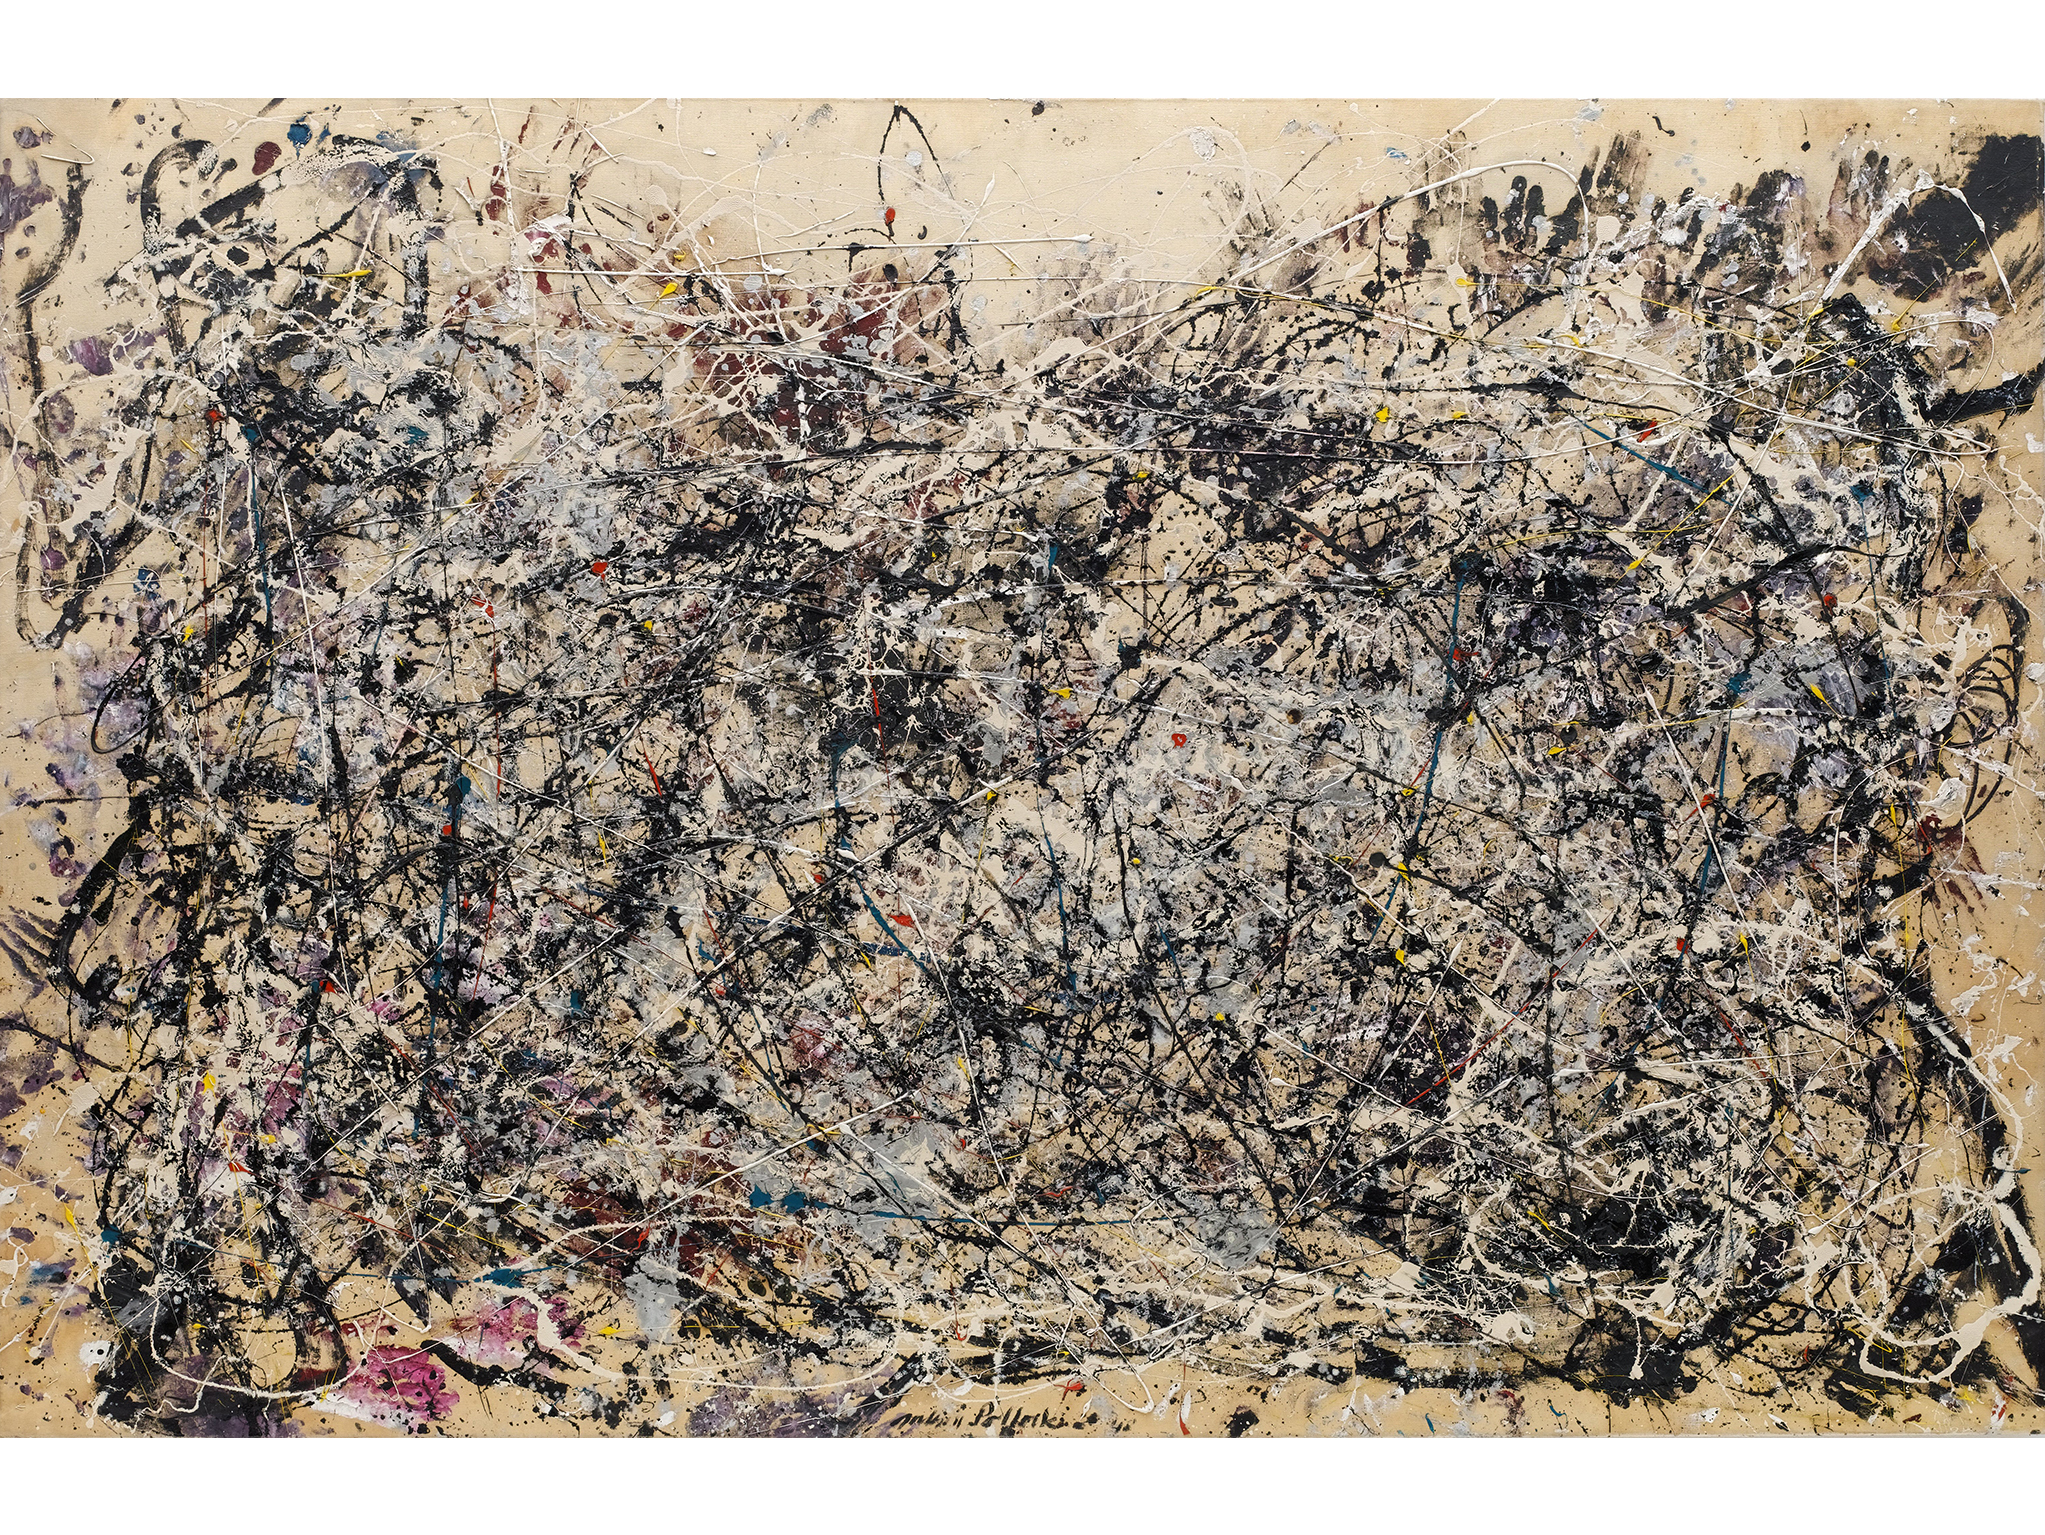 Number 1A (1948), Jackson Pollock